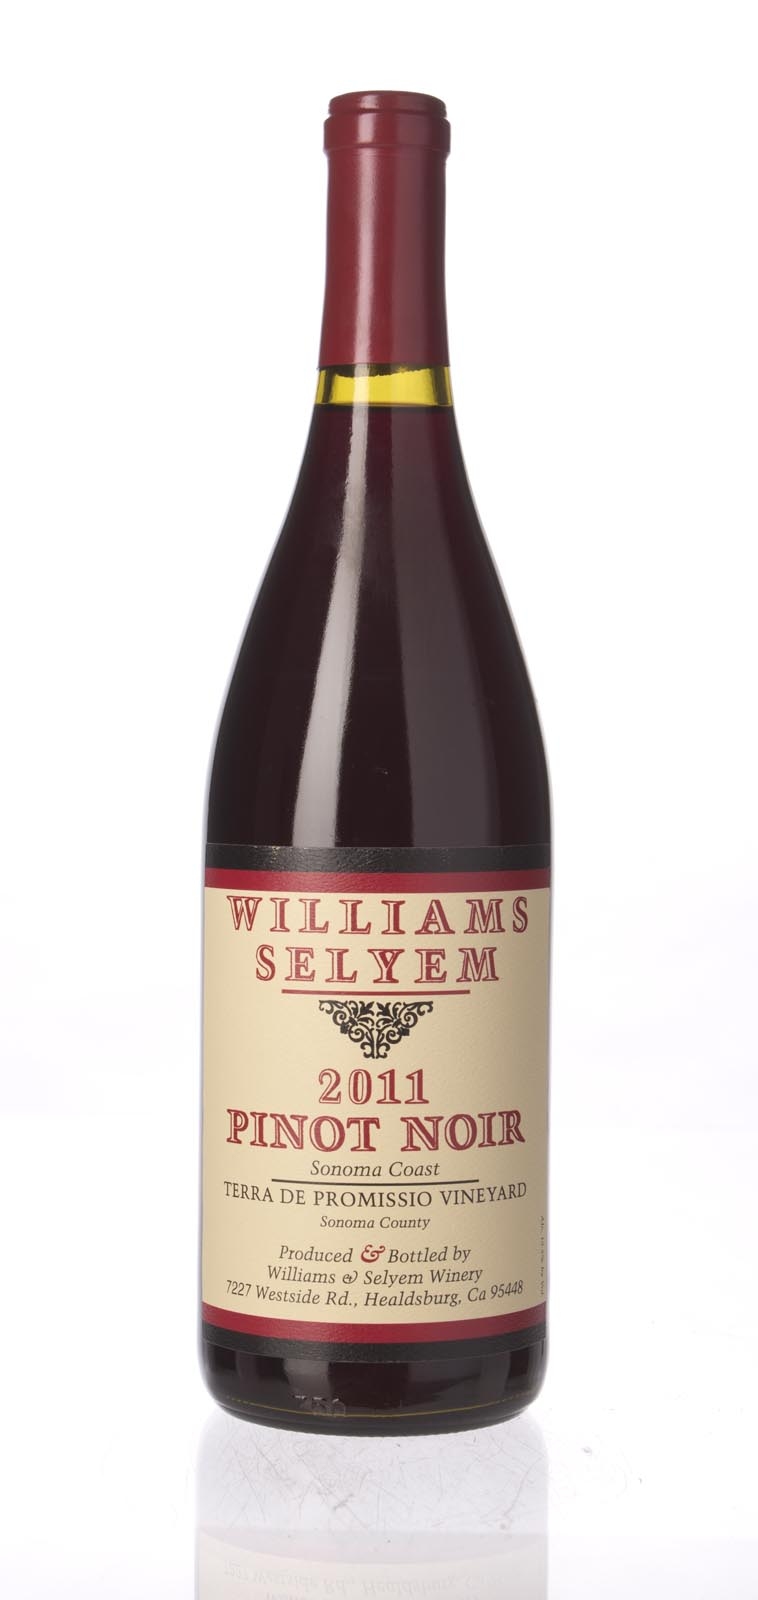 Williams Selyem Pinot Noir Terra de Promissio Vineyard 2011, 750mL () from The BPW - Merchants of rare and fine wines.